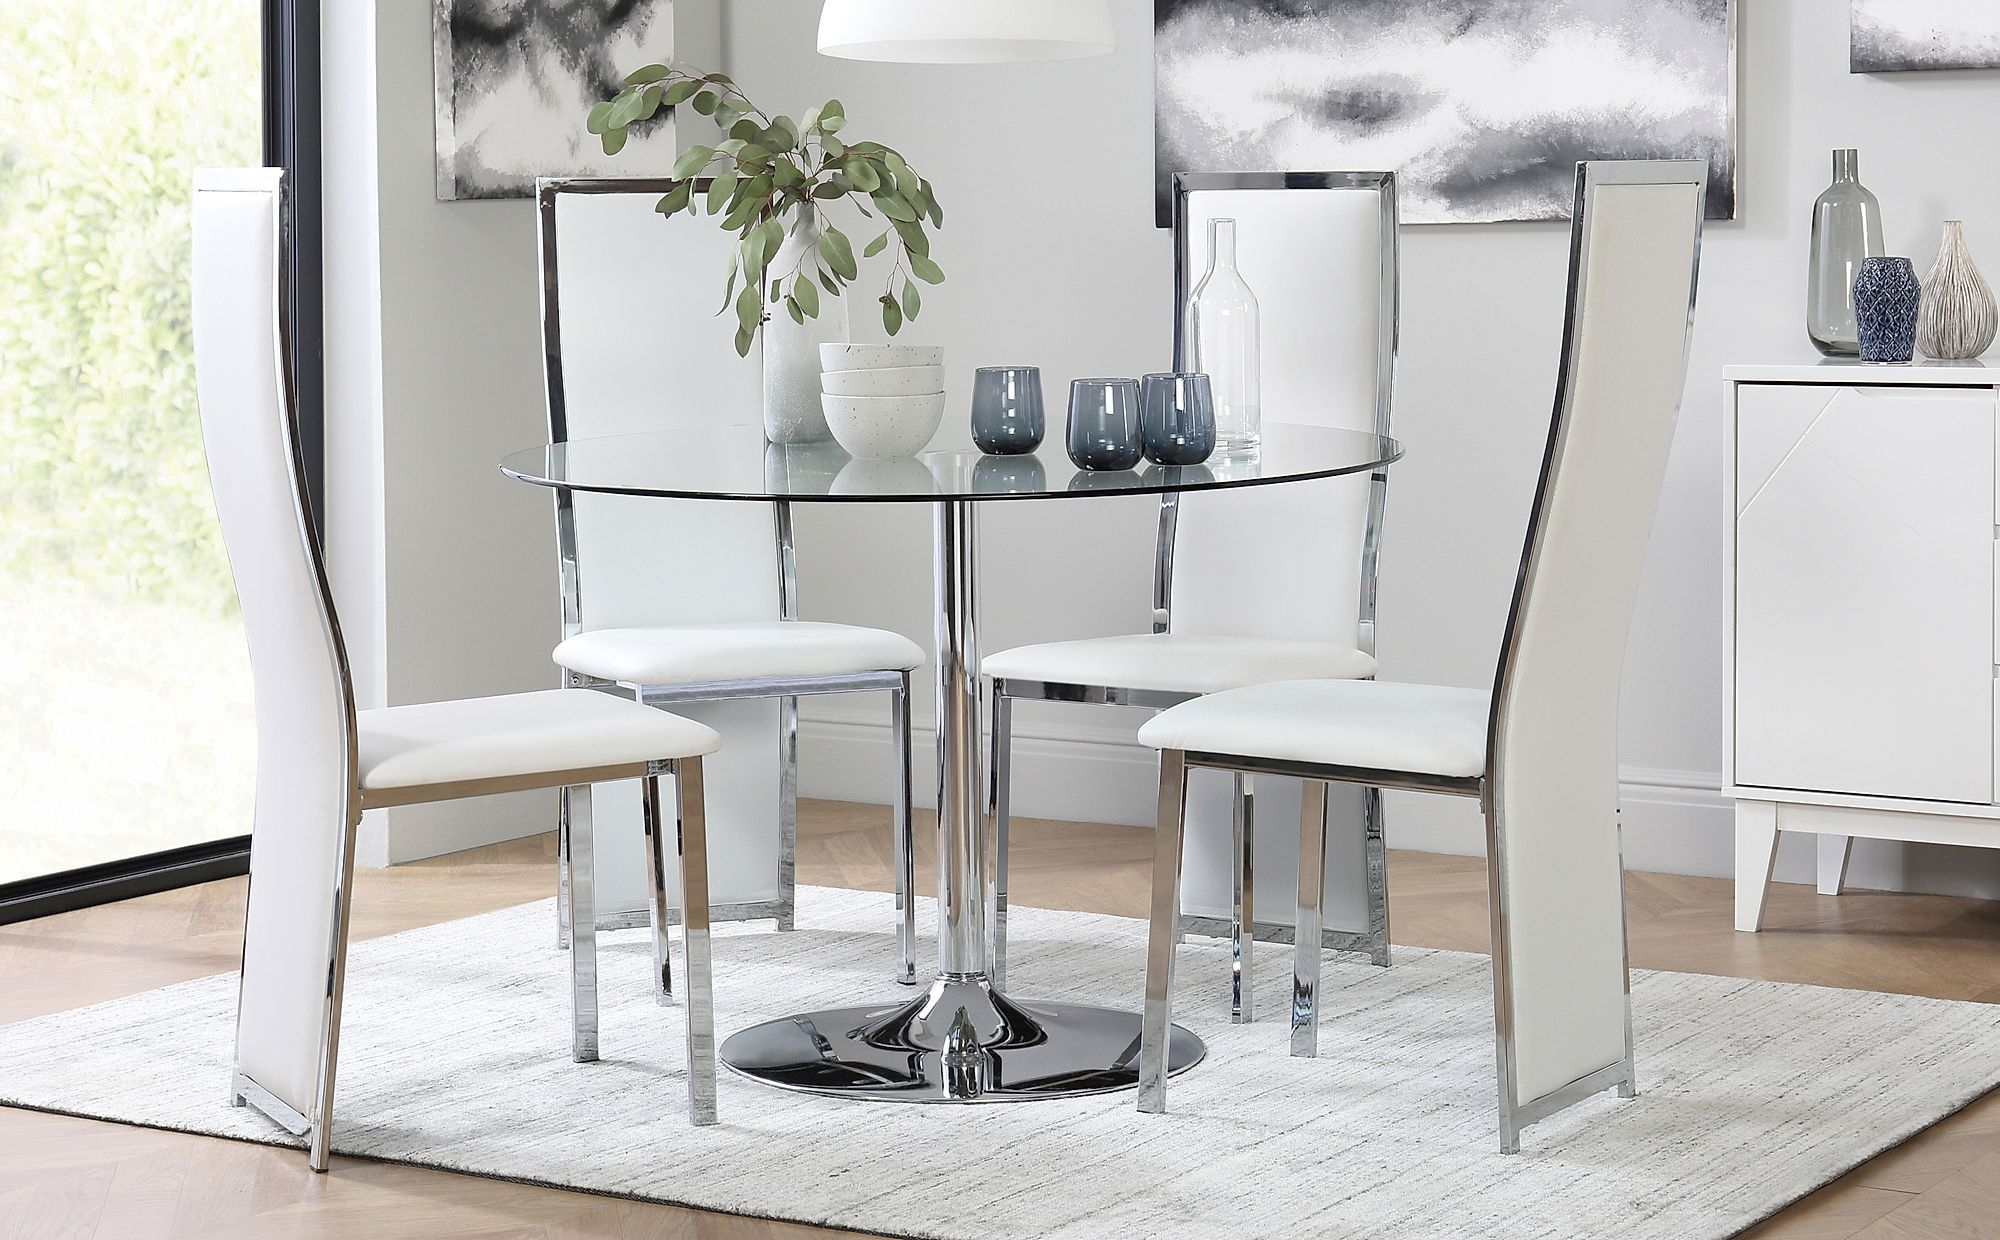 Orbit Round Chrome And Glass Dining Table With 4 Celeste White Leather Chairs  Furniture Choice